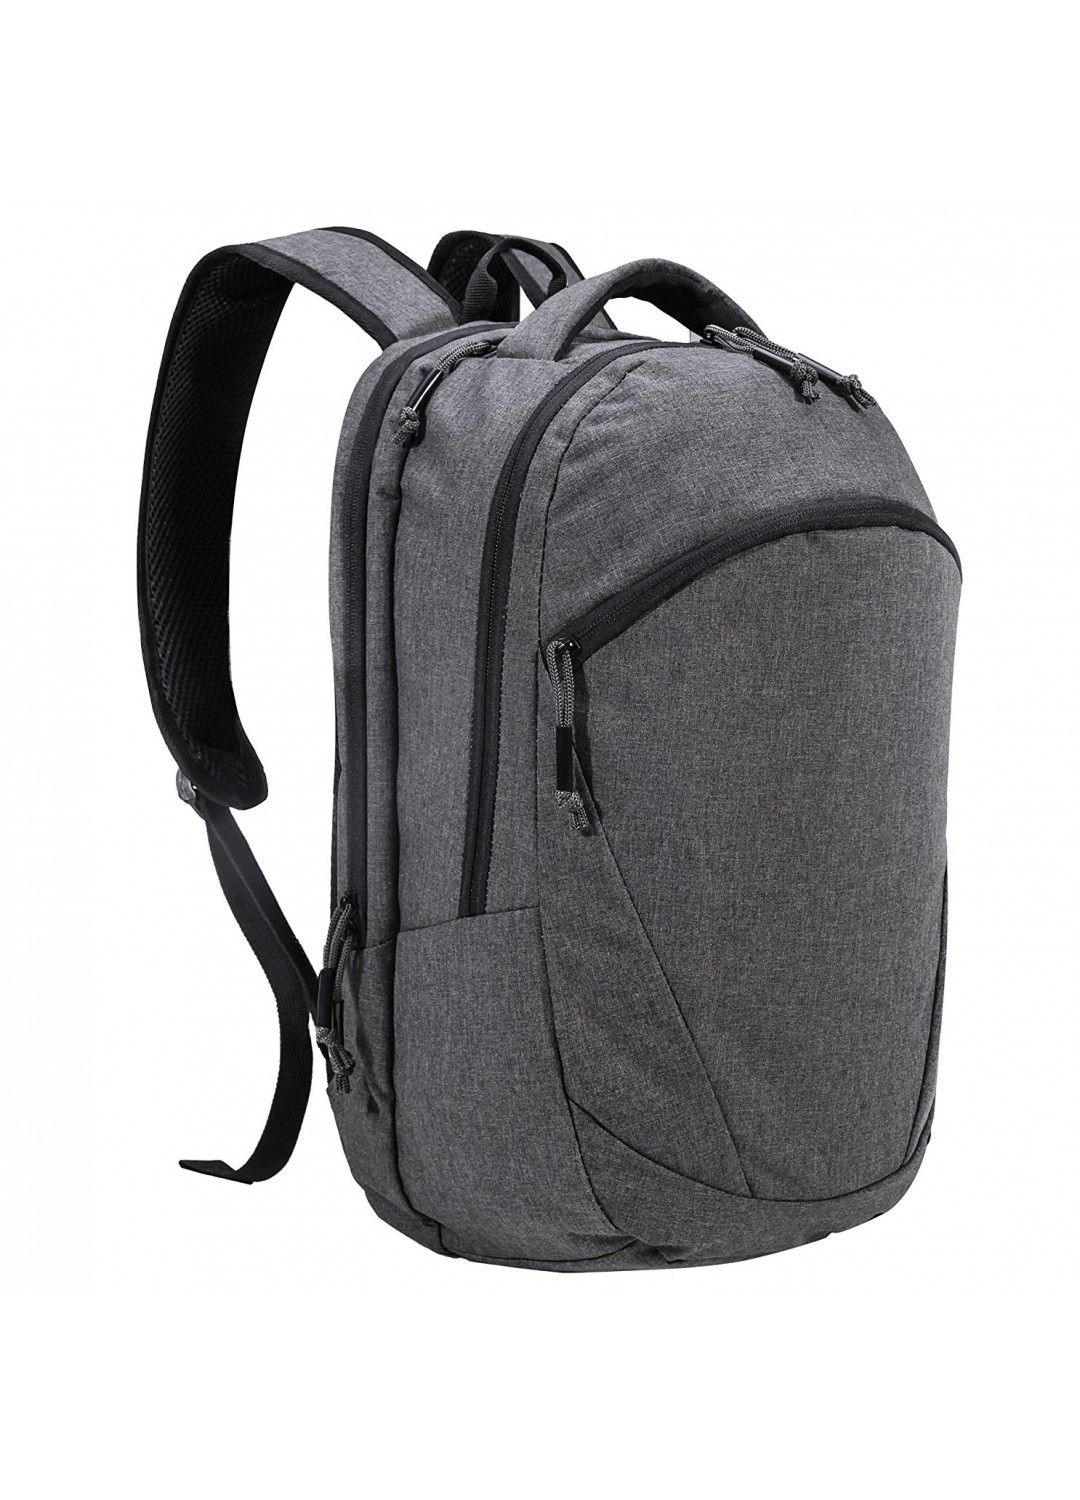 MIER Unisex Laptop Backpack for Business 08b7ebdf17d0a